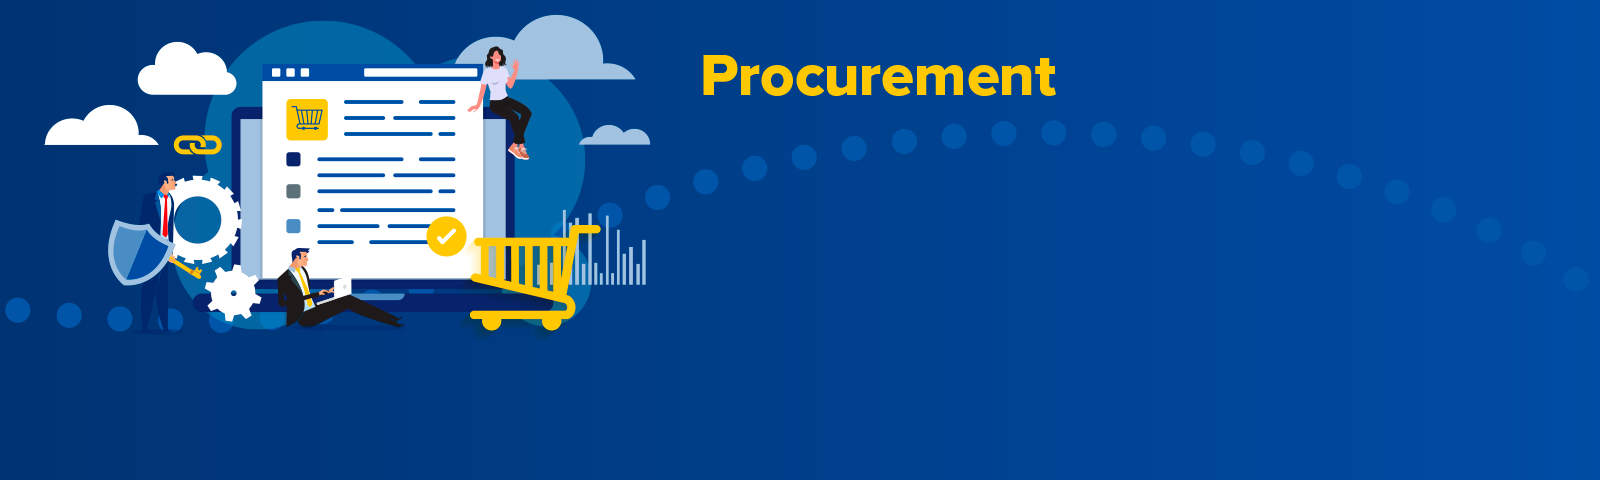 Procurement - ARIBA - SAVE THE DATE – AGENDA is coming